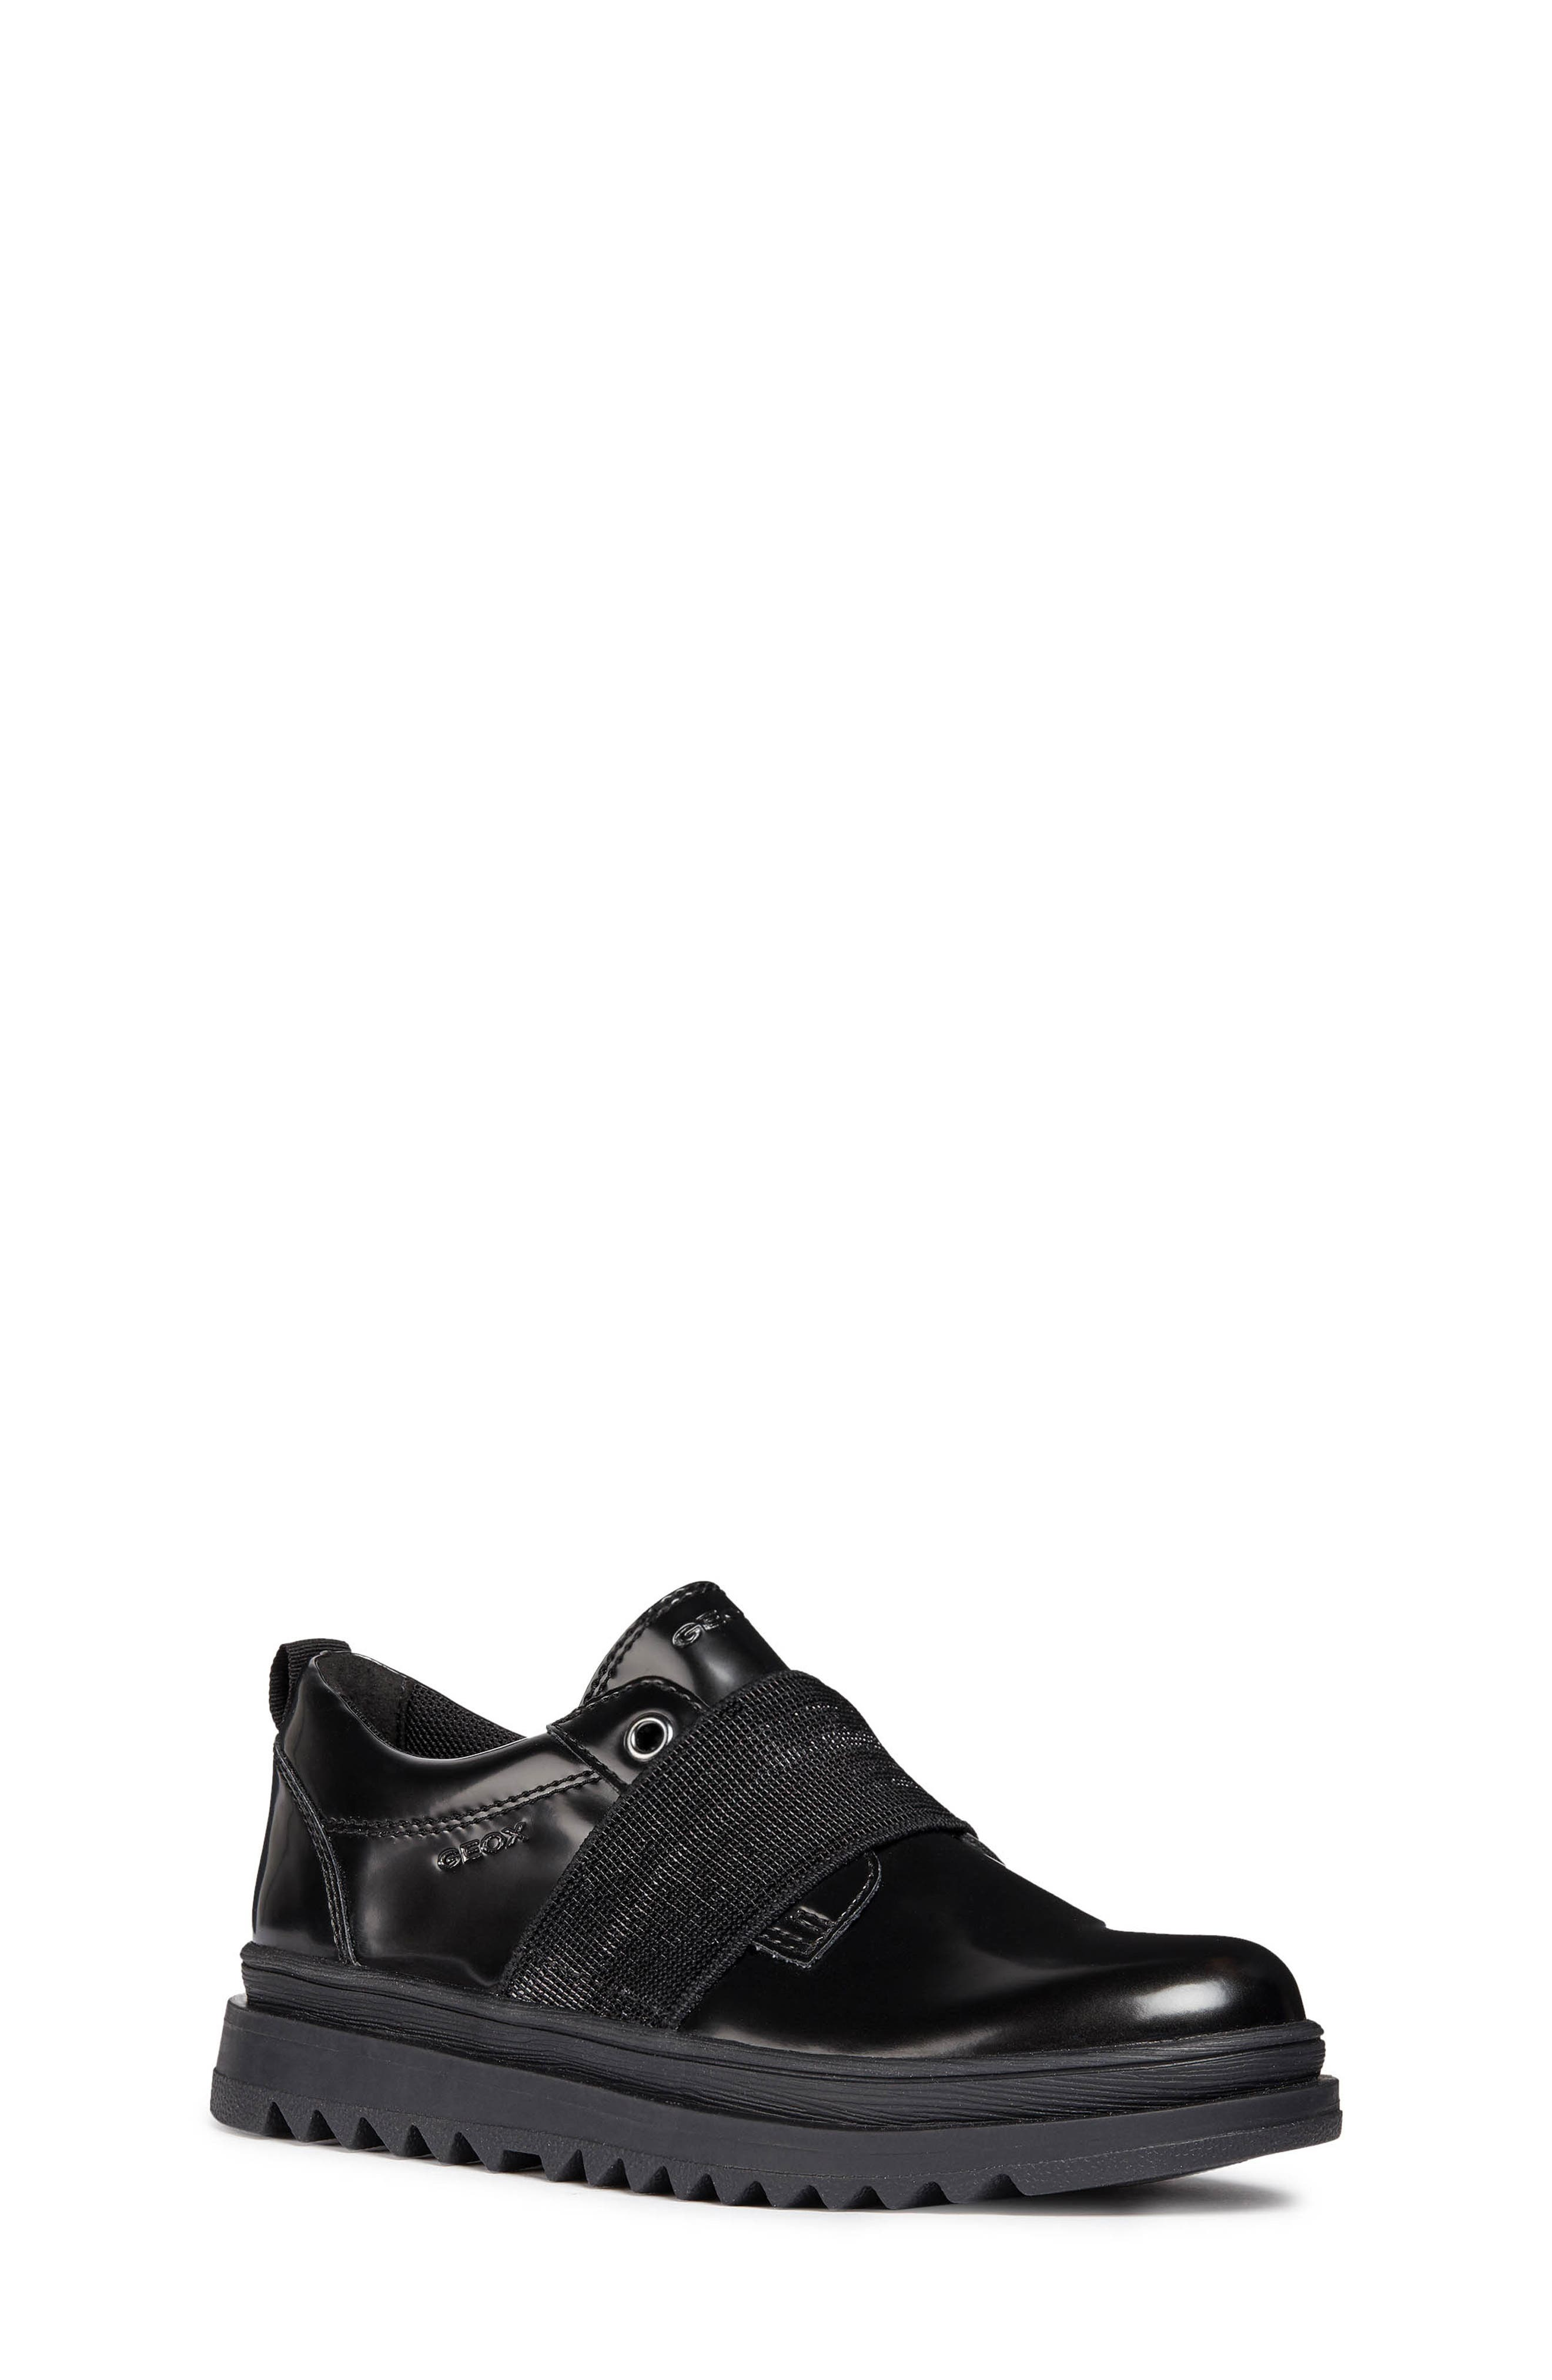 Gilly Jaw Sneaker,                             Main thumbnail 1, color,                             BLACK